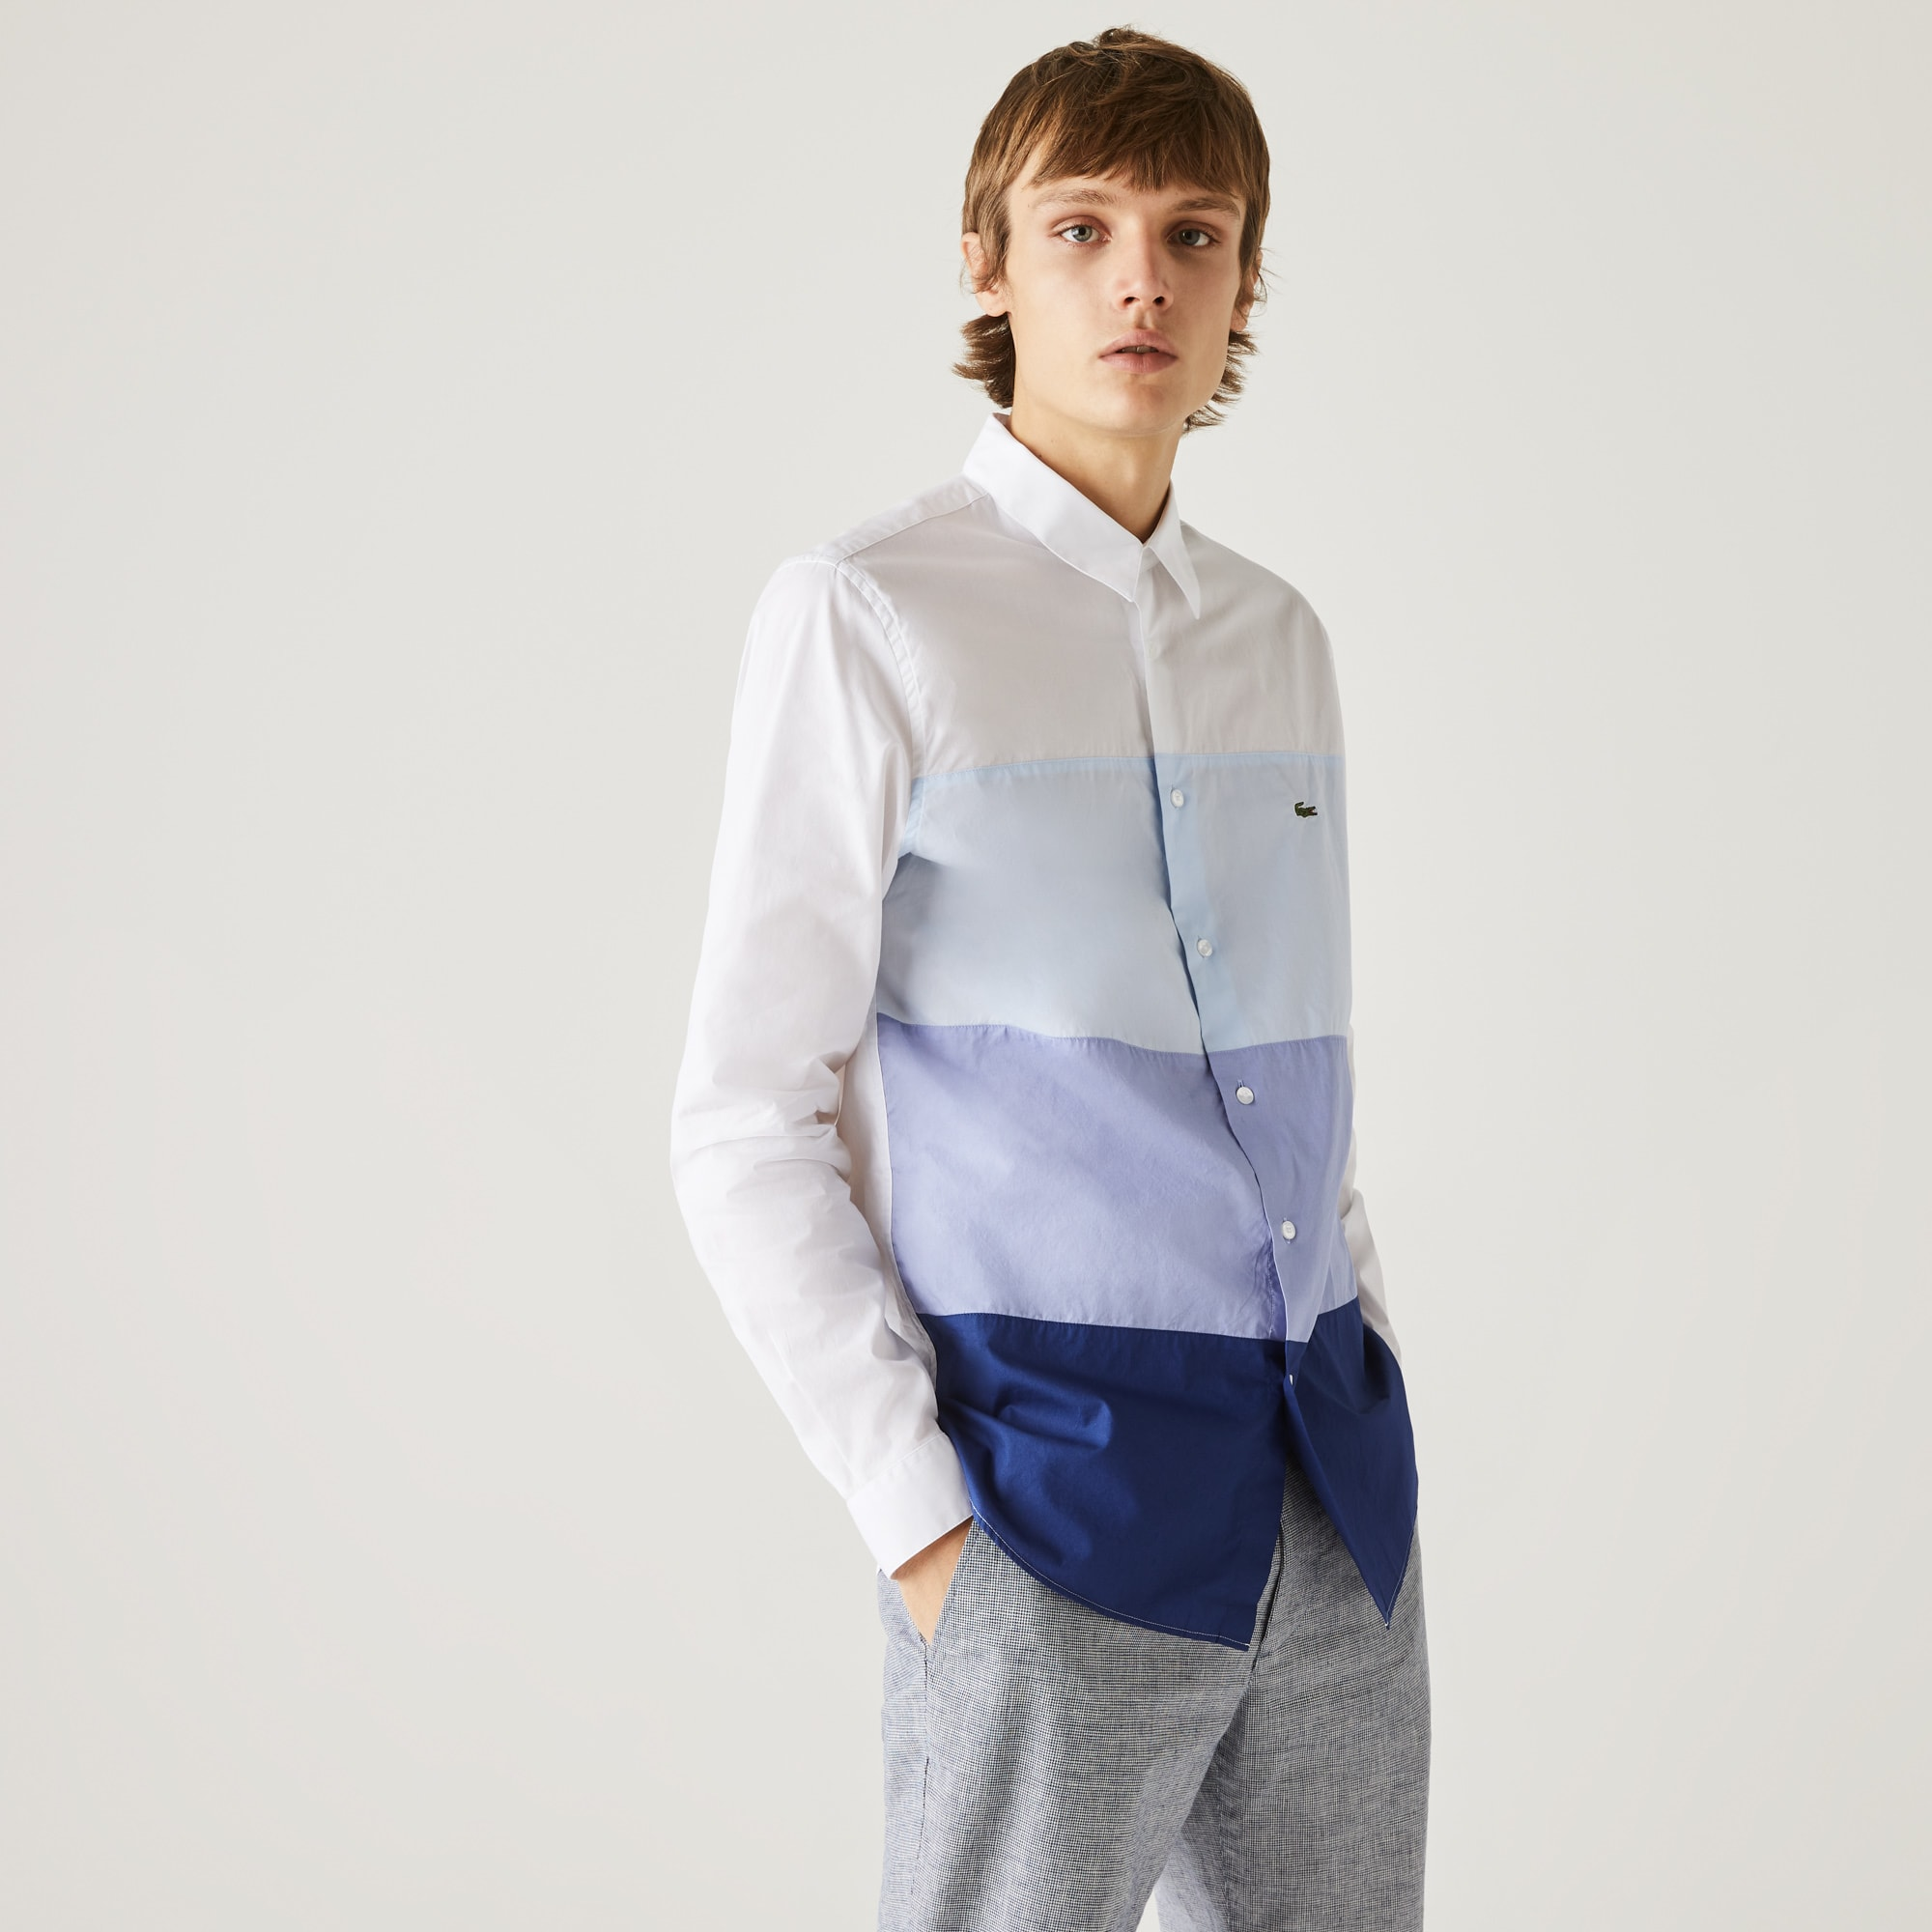 Overhemd heren regular fit katoen met colorblock